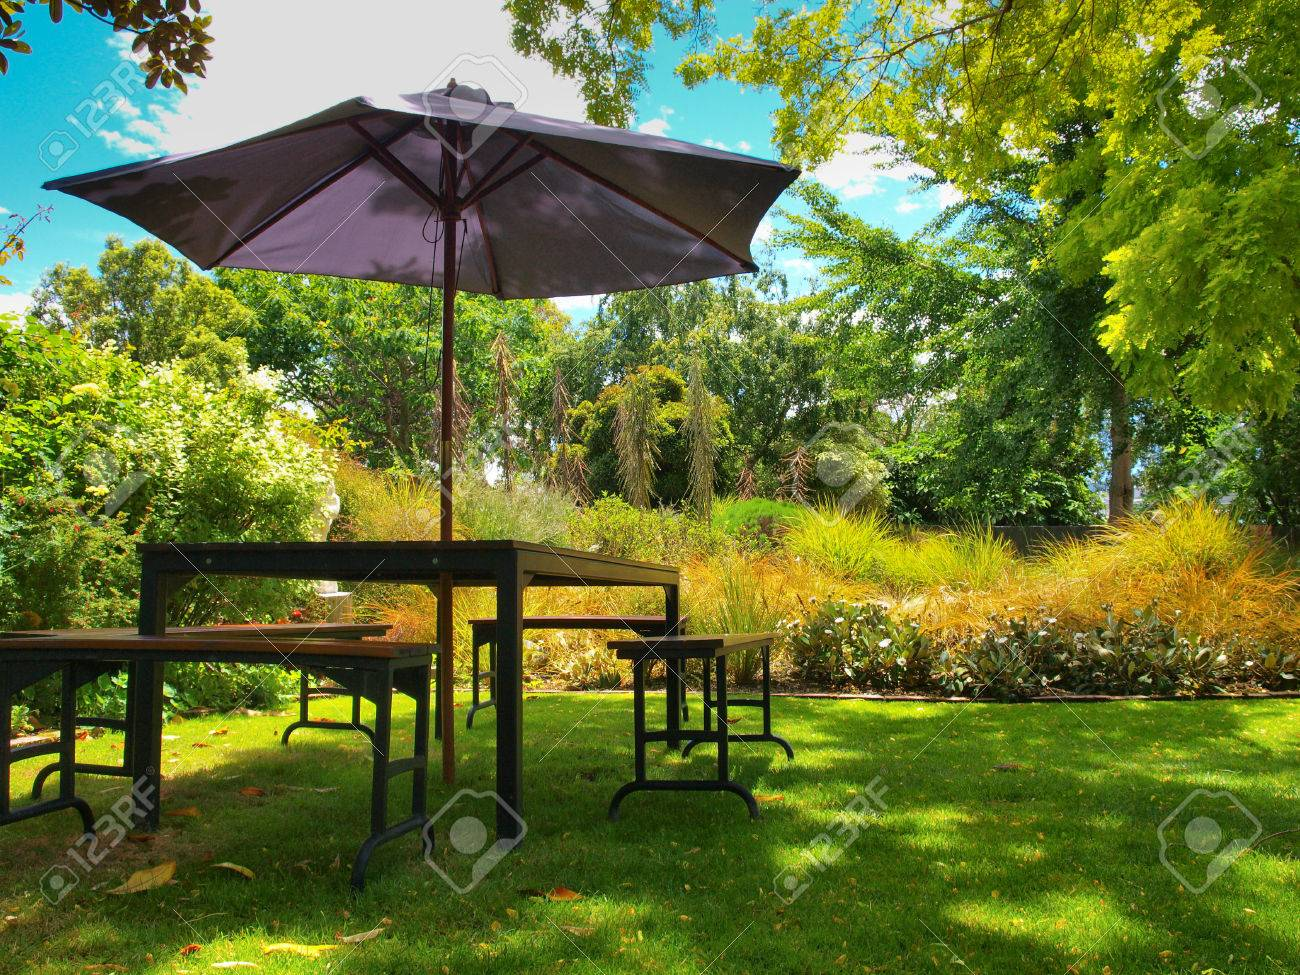 Dining Table With Chairs And Parasol In The Shade In A Lush Garden Stock  Photo